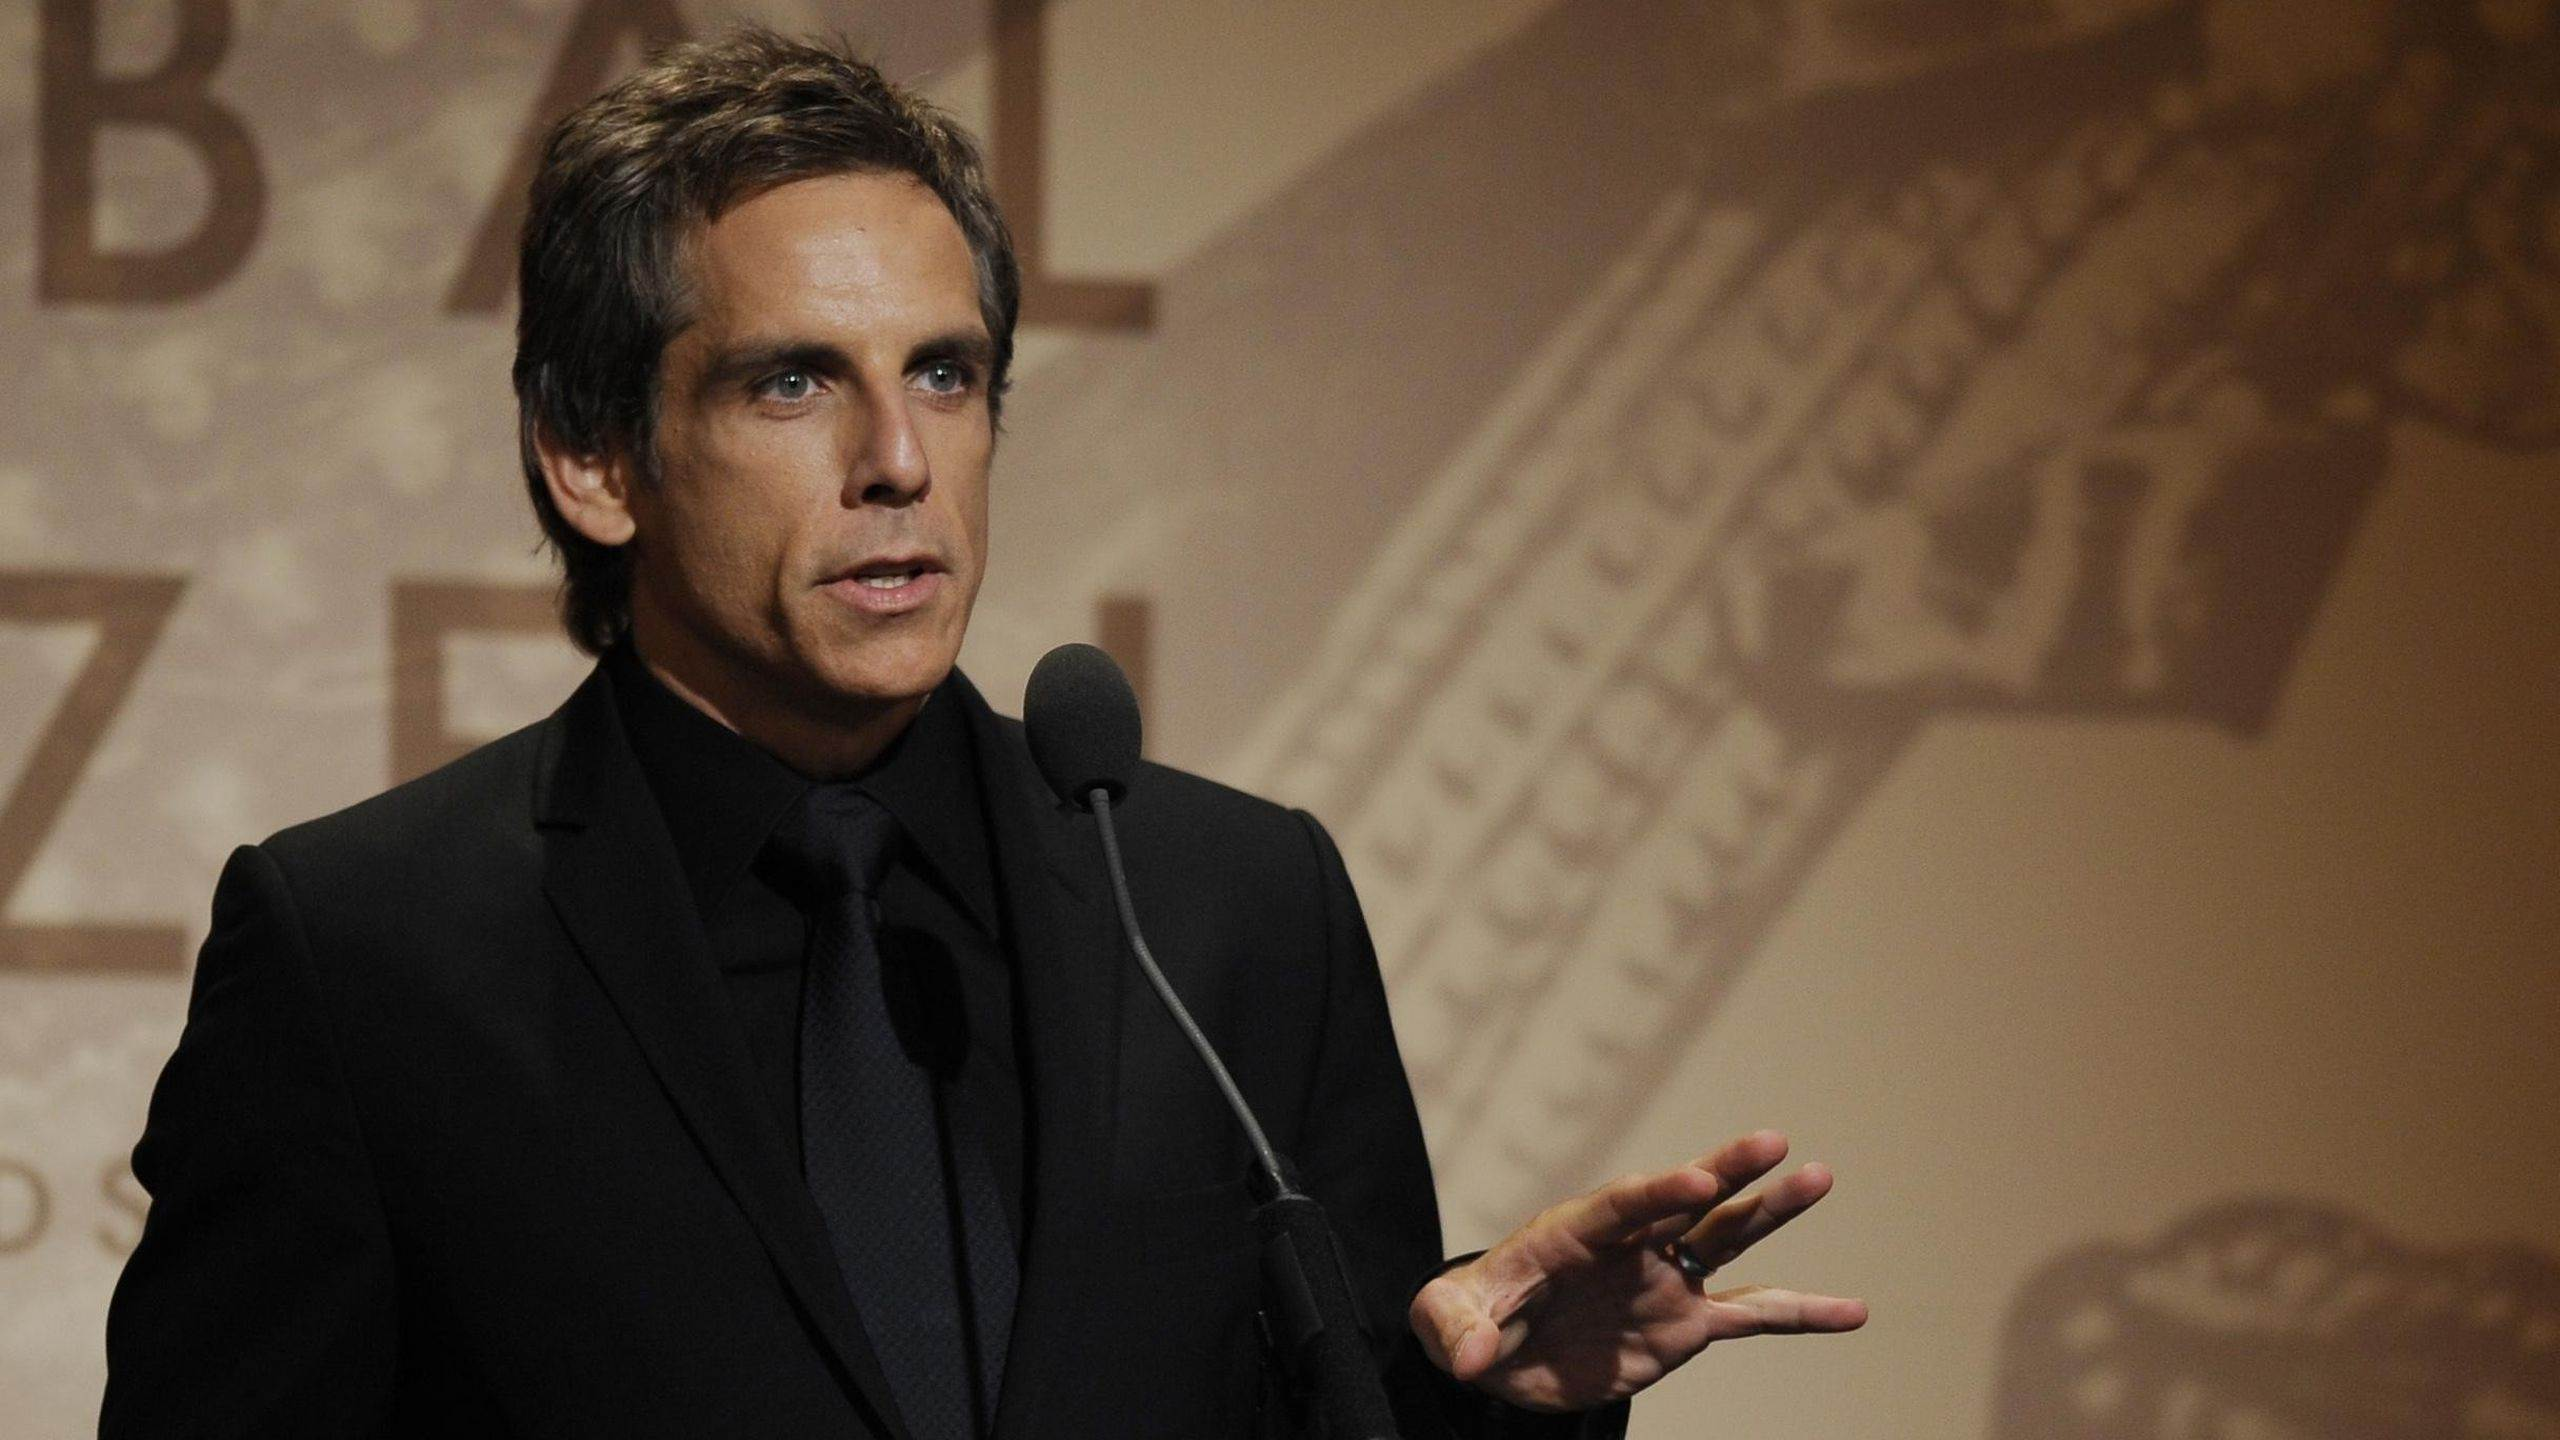 Ben Stiller Wallpaper